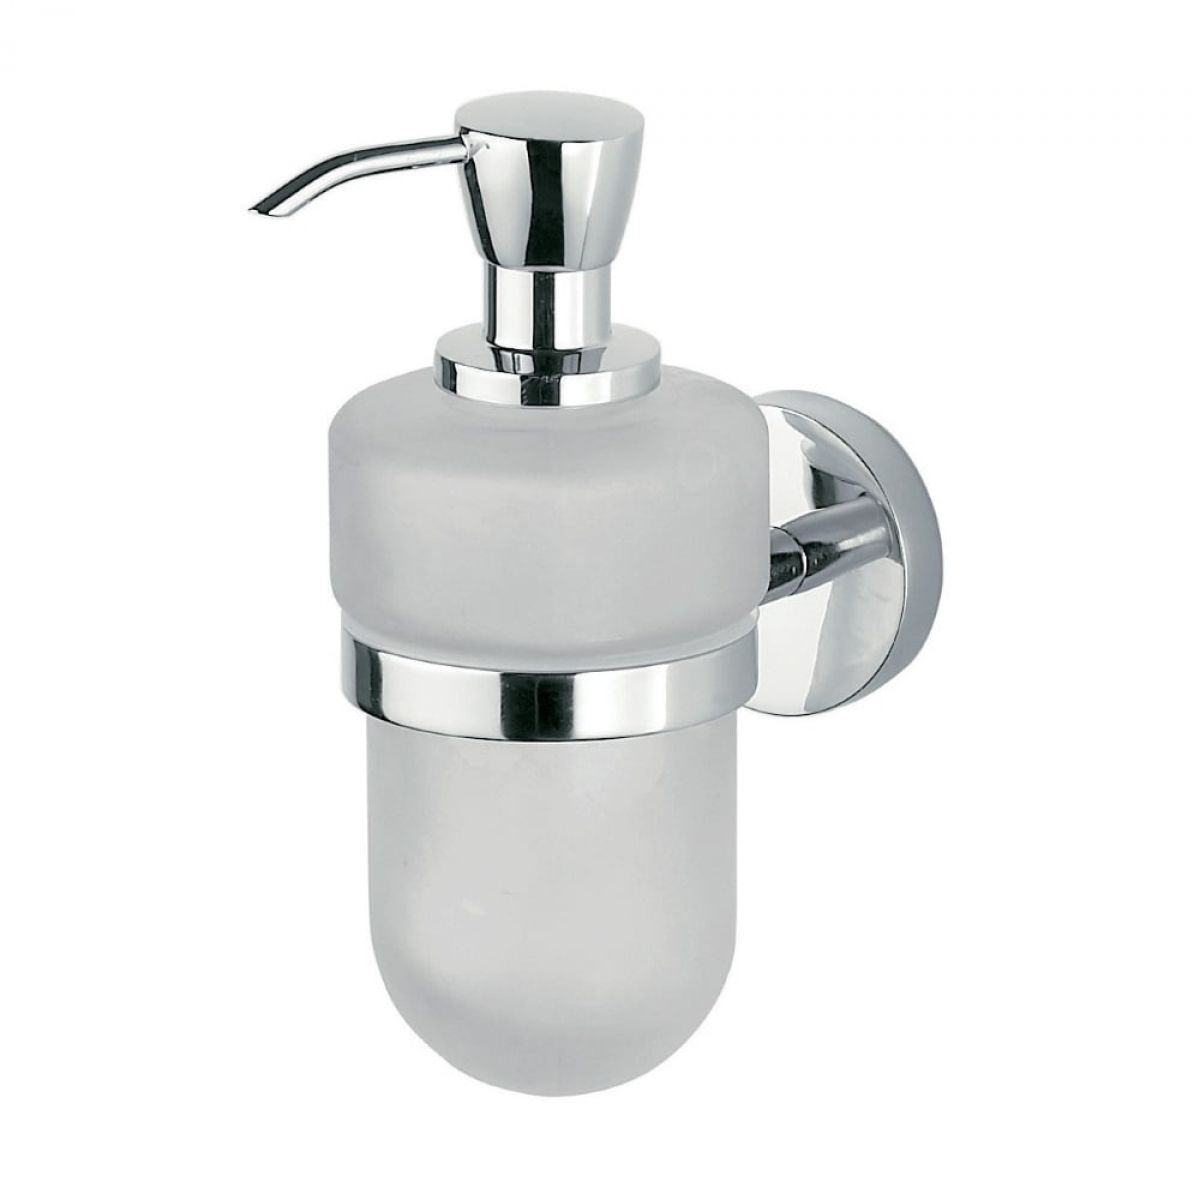 Inda forum wall mounted liquid soap dispenser 7 x 17h x for Liquid soap dispenser for bathroom